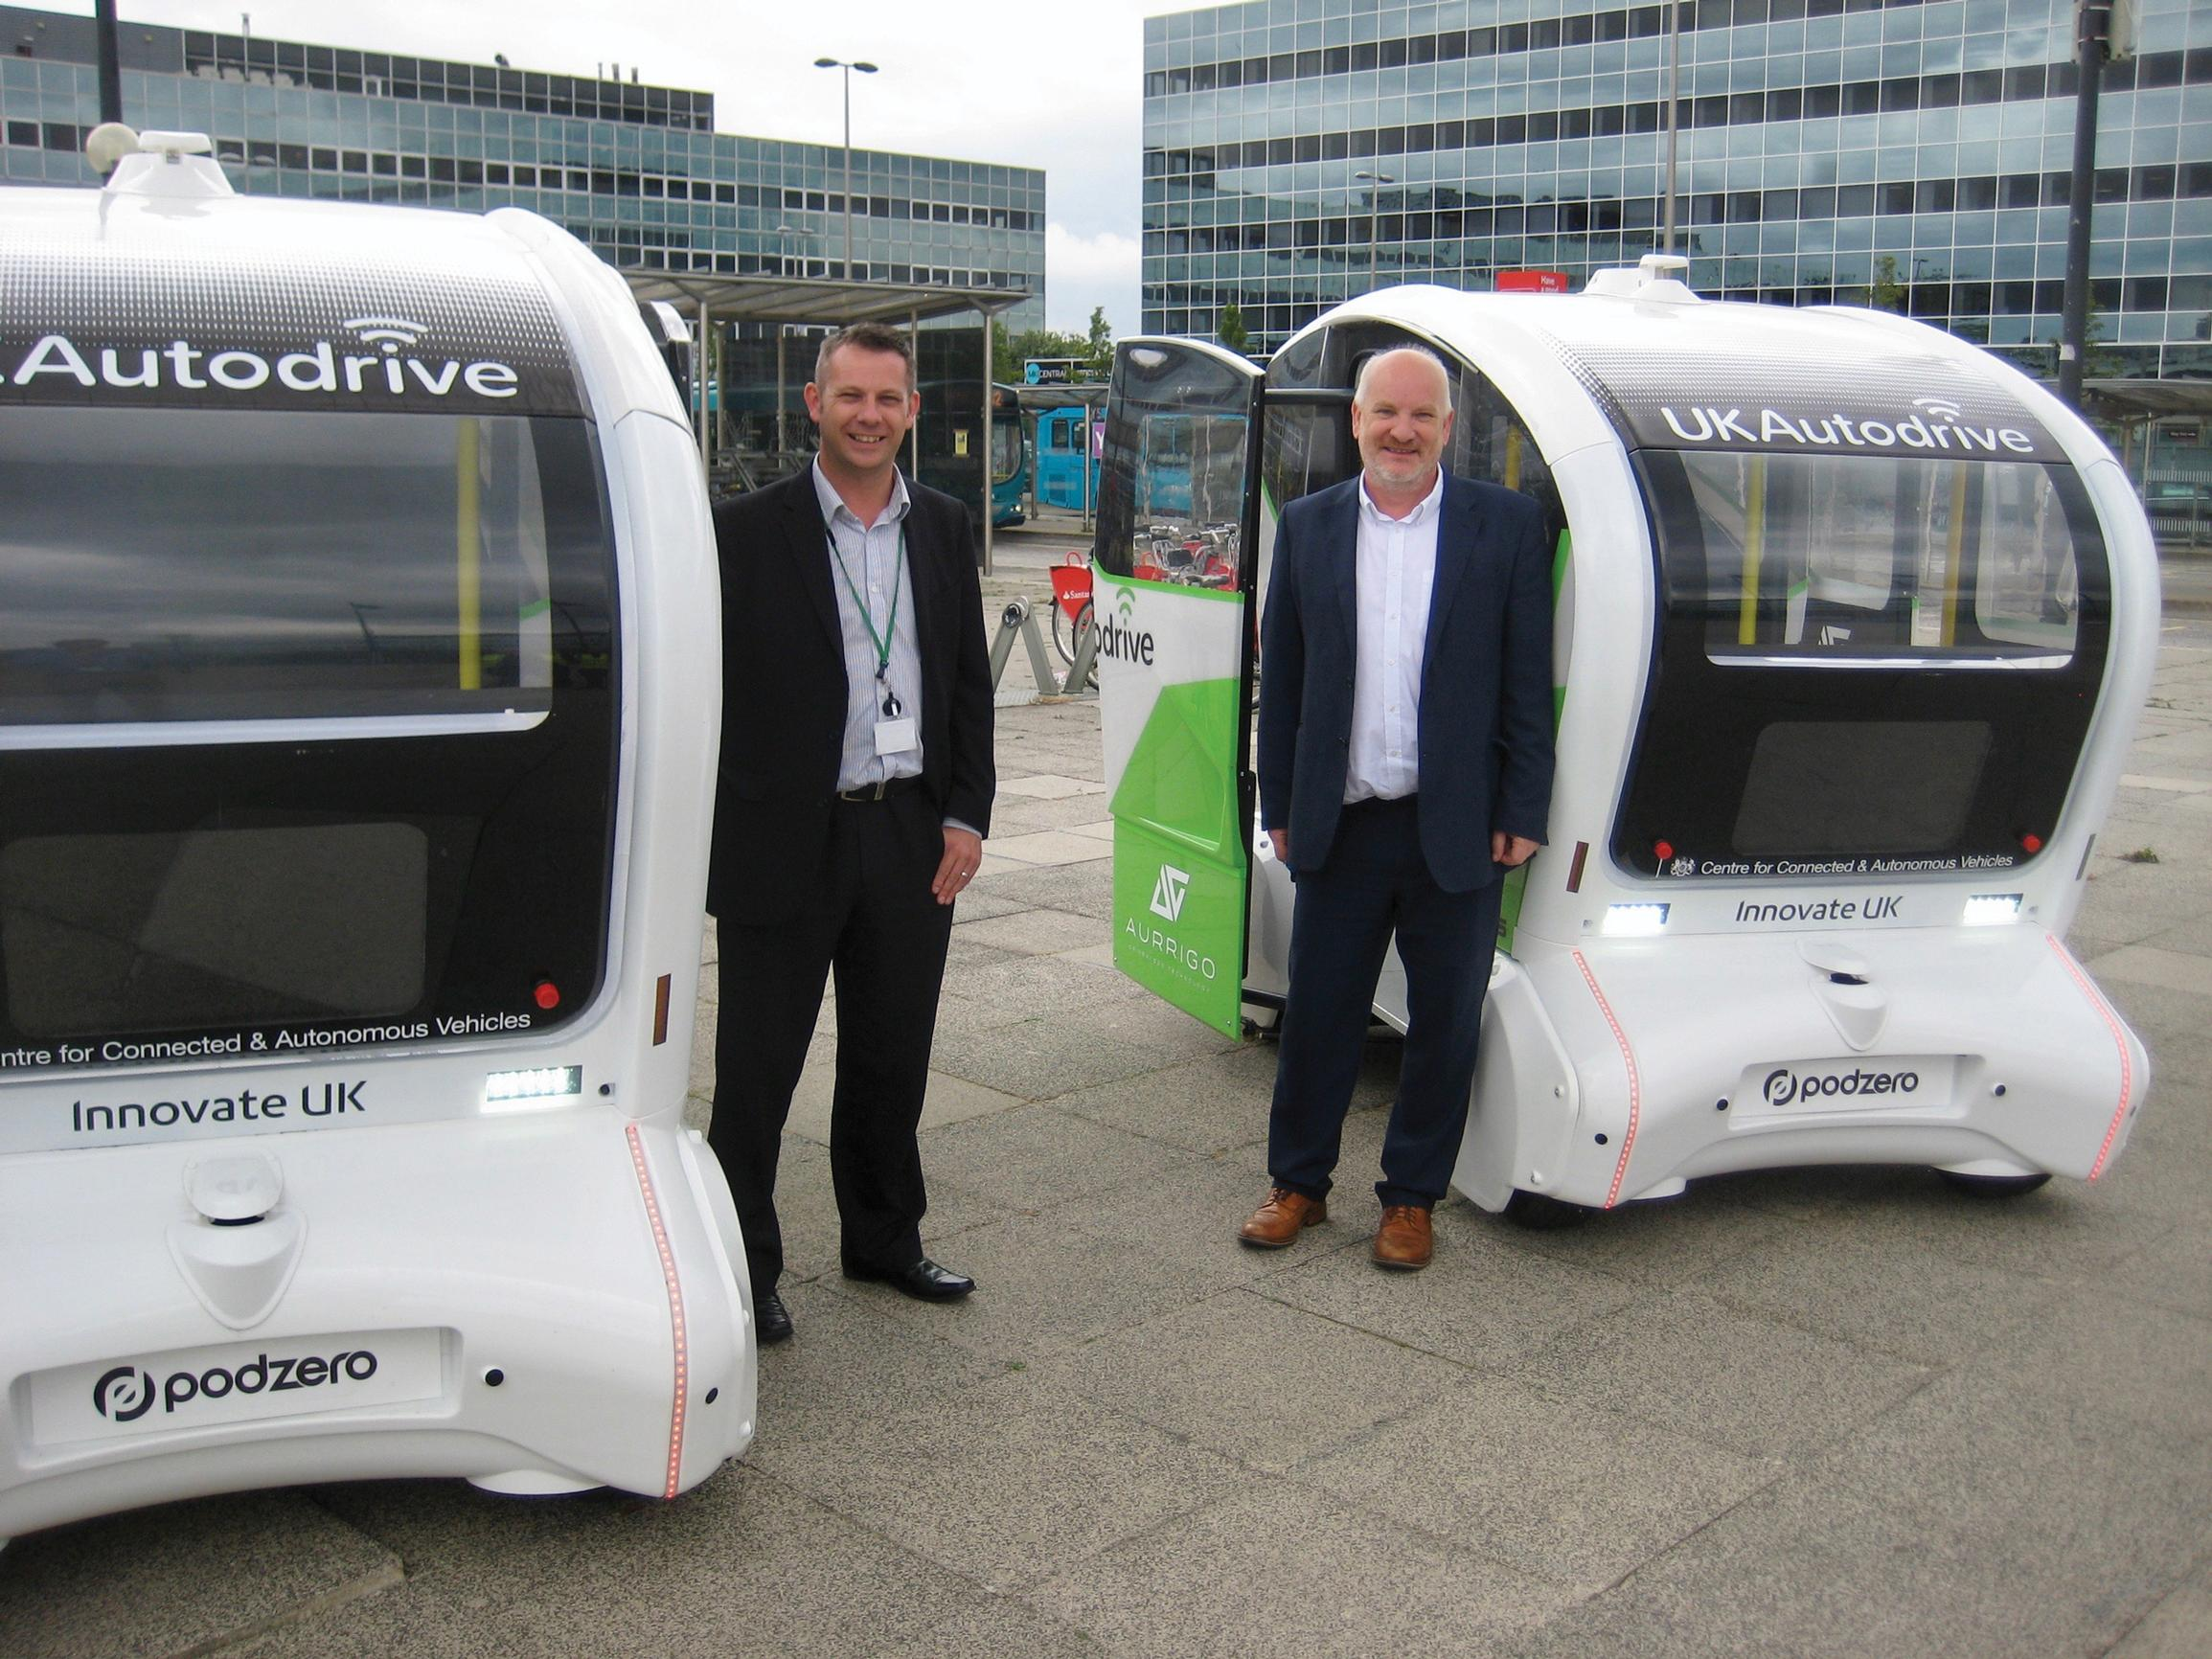 Steve Hayes (left), the council's head of transport, and Brian Matthews, its head of transport innovation